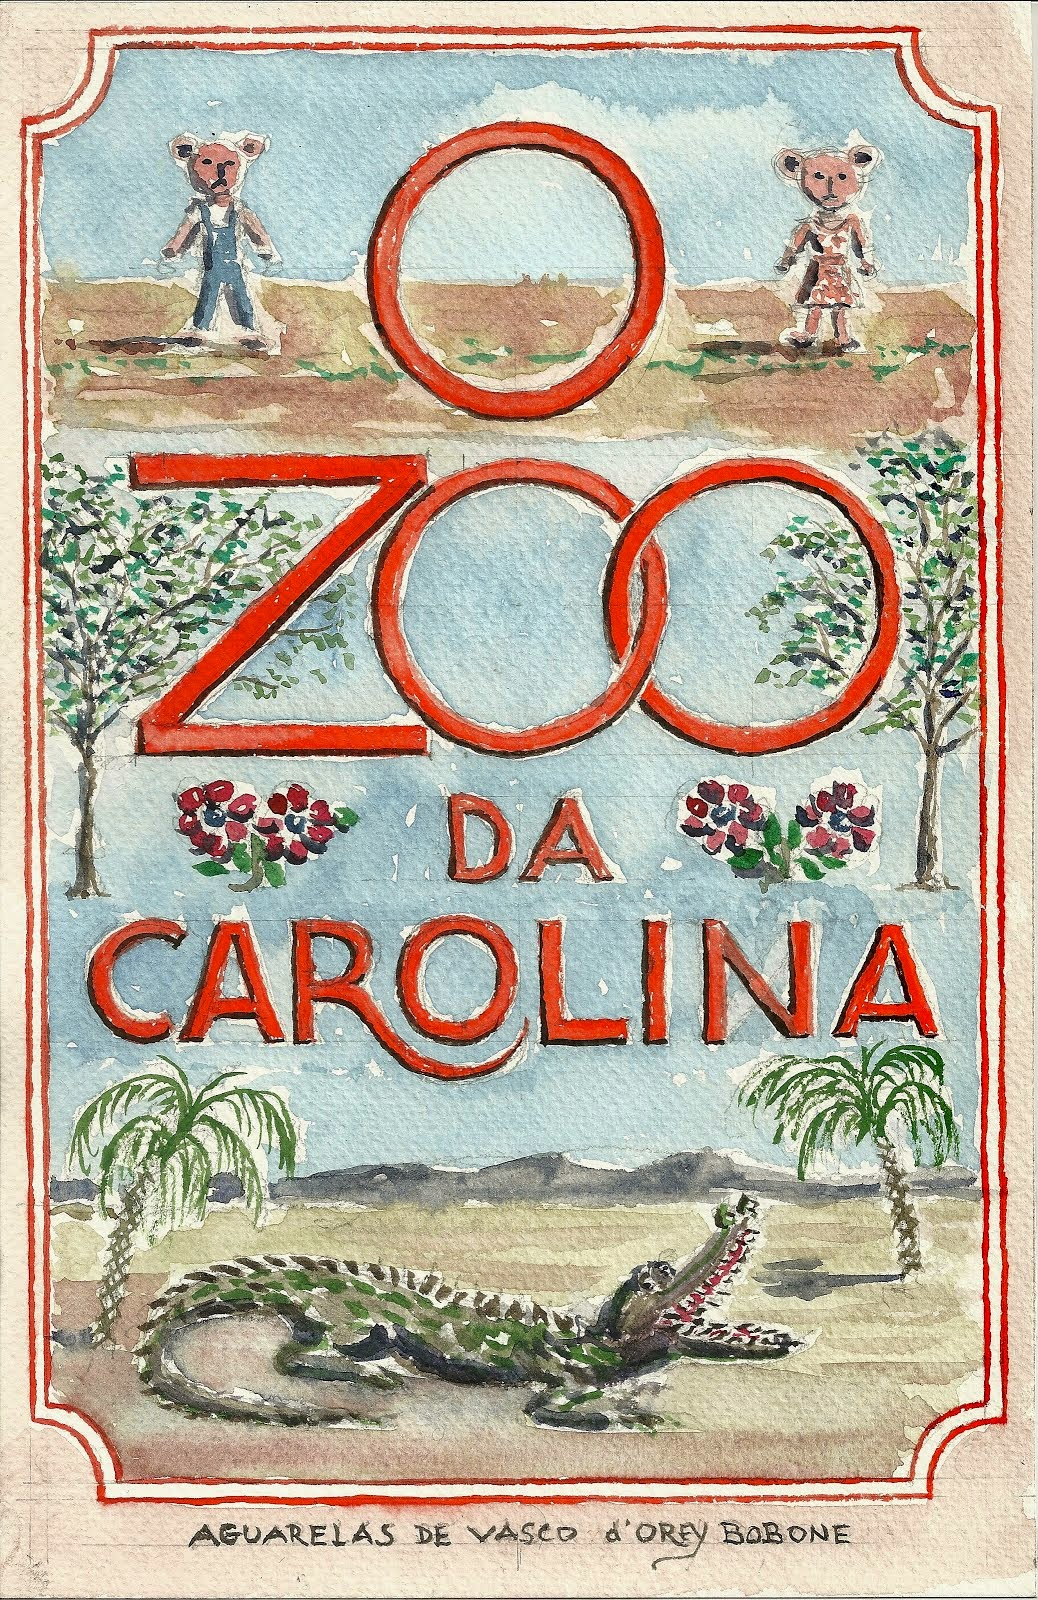 The Carolina Zoo